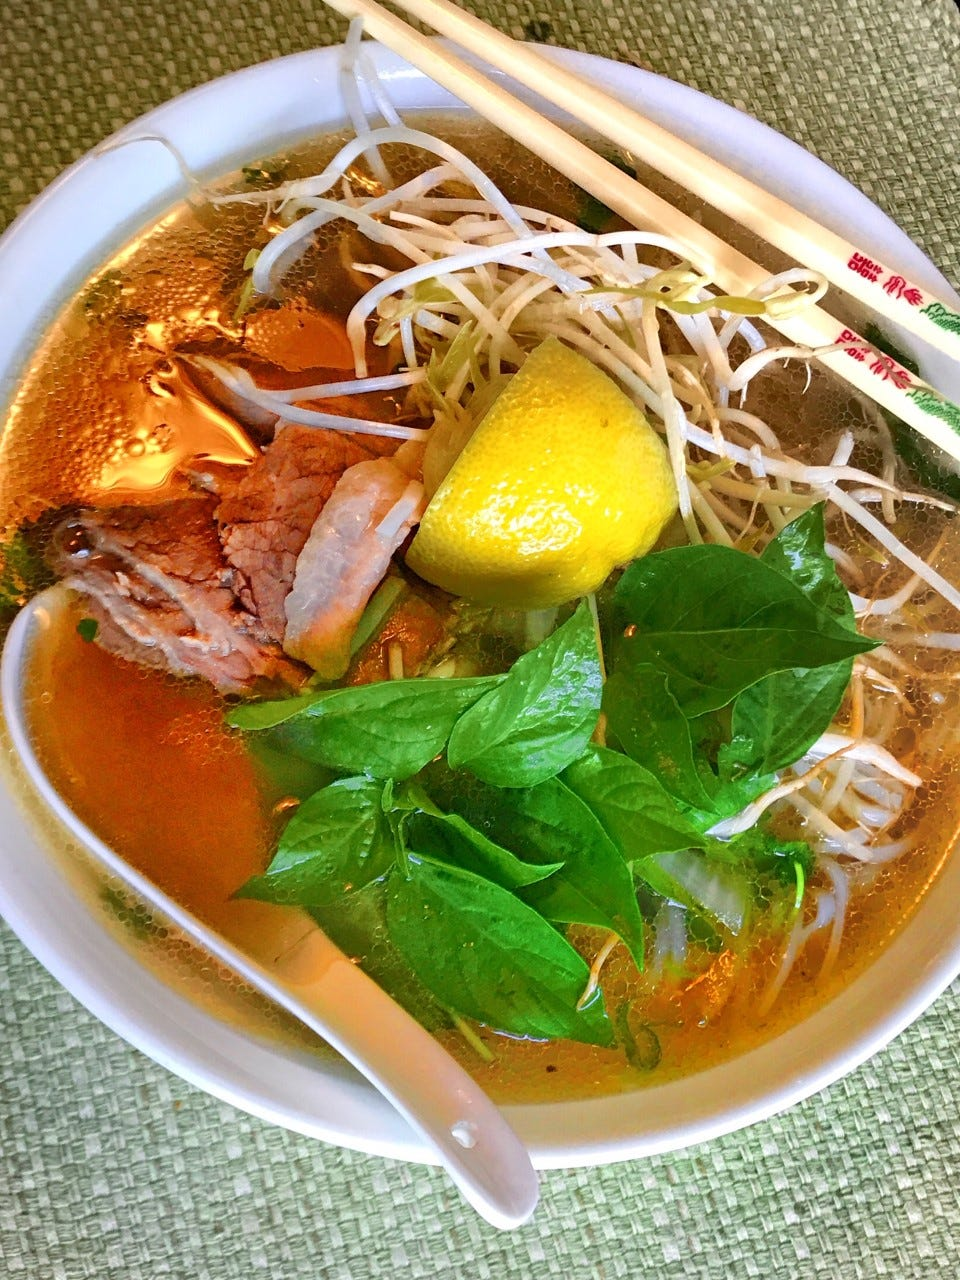 Spicy pho from I-Sandwich & Pho in Harmon.